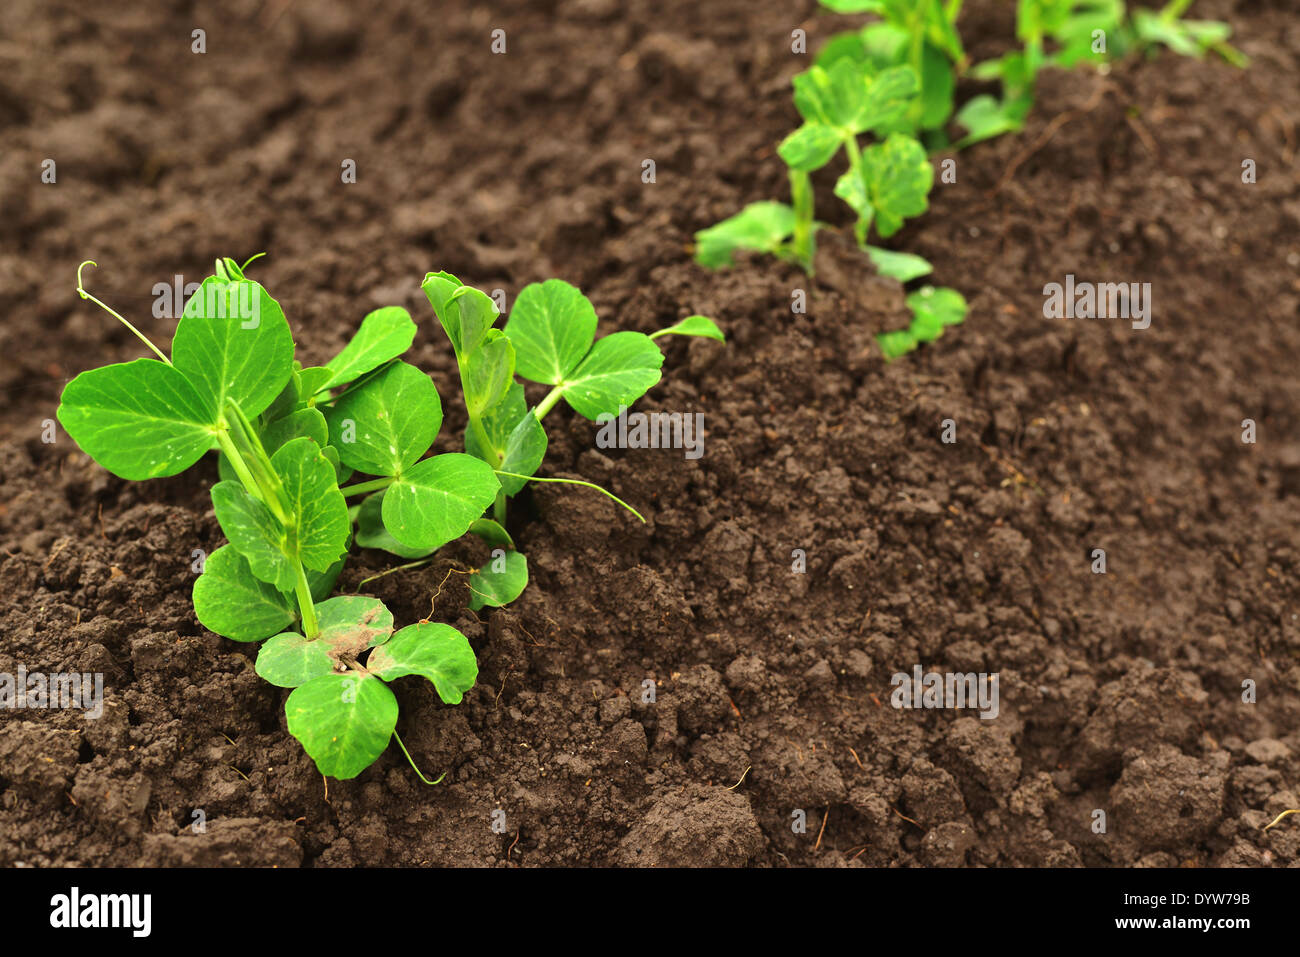 Pea Plant Growing Stock Photos & Pea Plant Growing Stock Images - Alamy